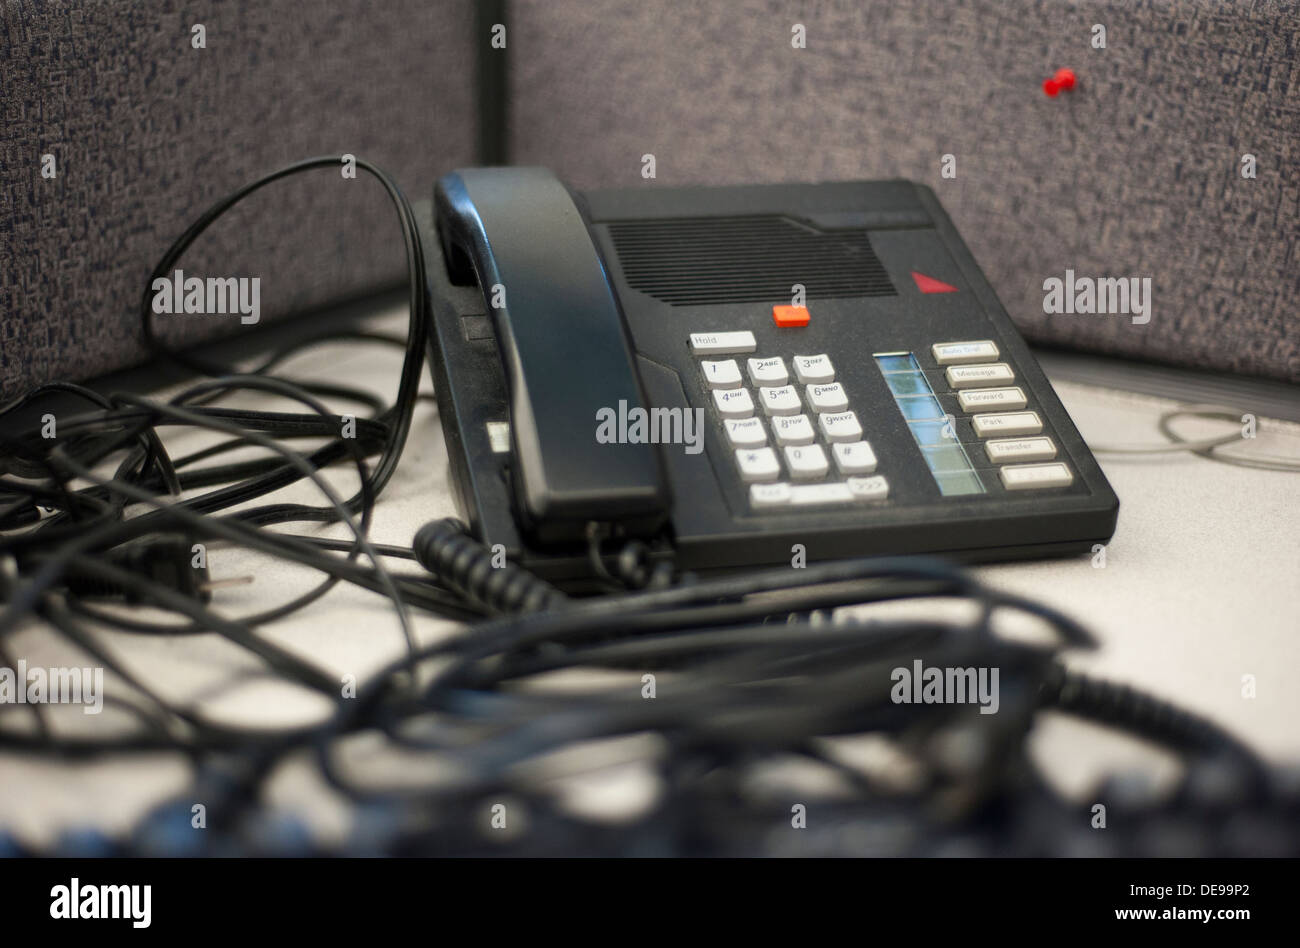 Dusty phone with tangled wires in an abandoned work space - Stock Image